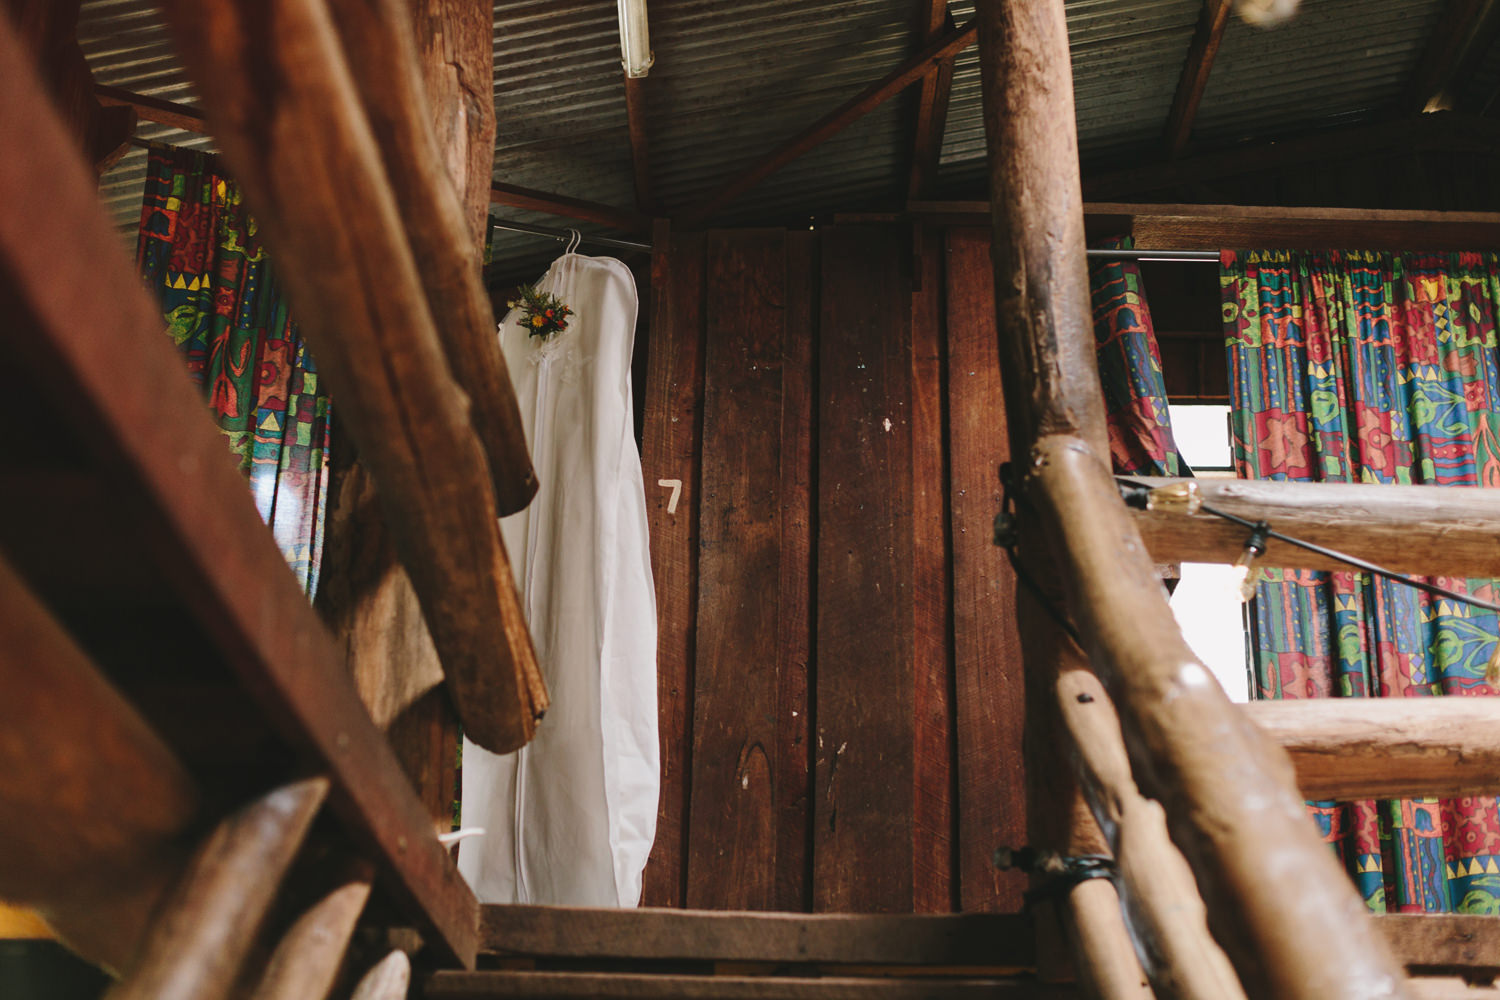 047-Barn_Wedding_Australia_Sam_Ting.jpg